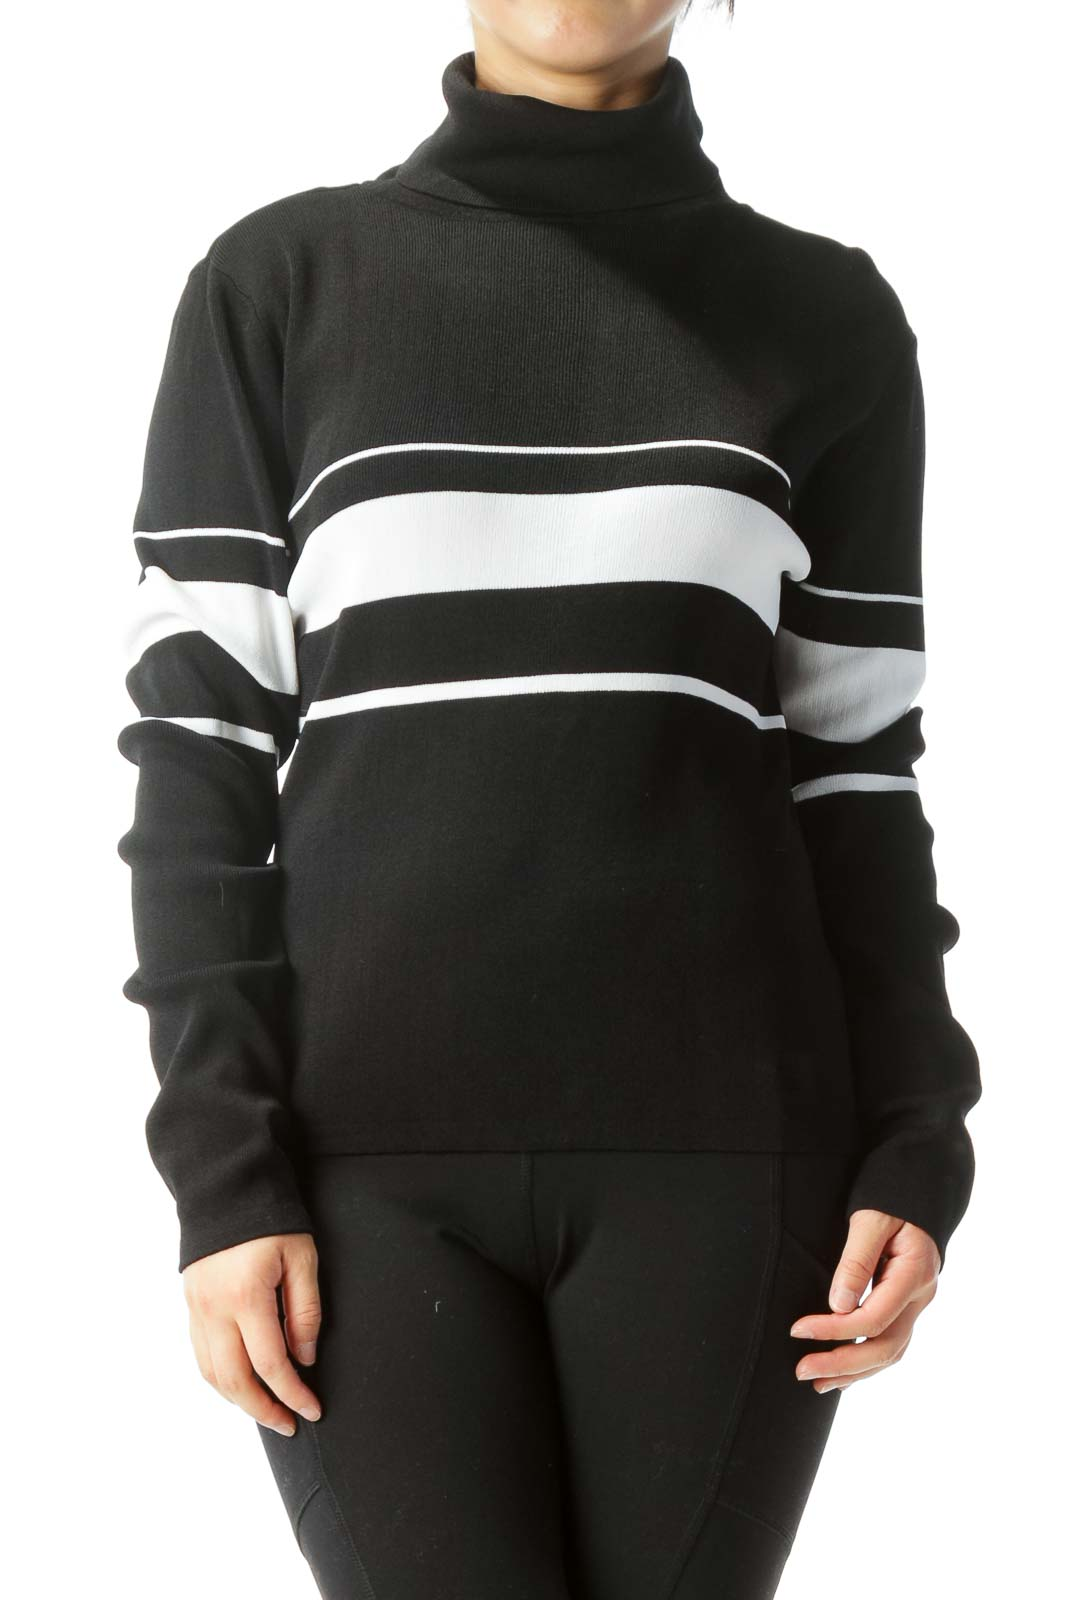 Black & White Horizontal-Striped Long-Sleeve Turtle-Neck Sweater Front